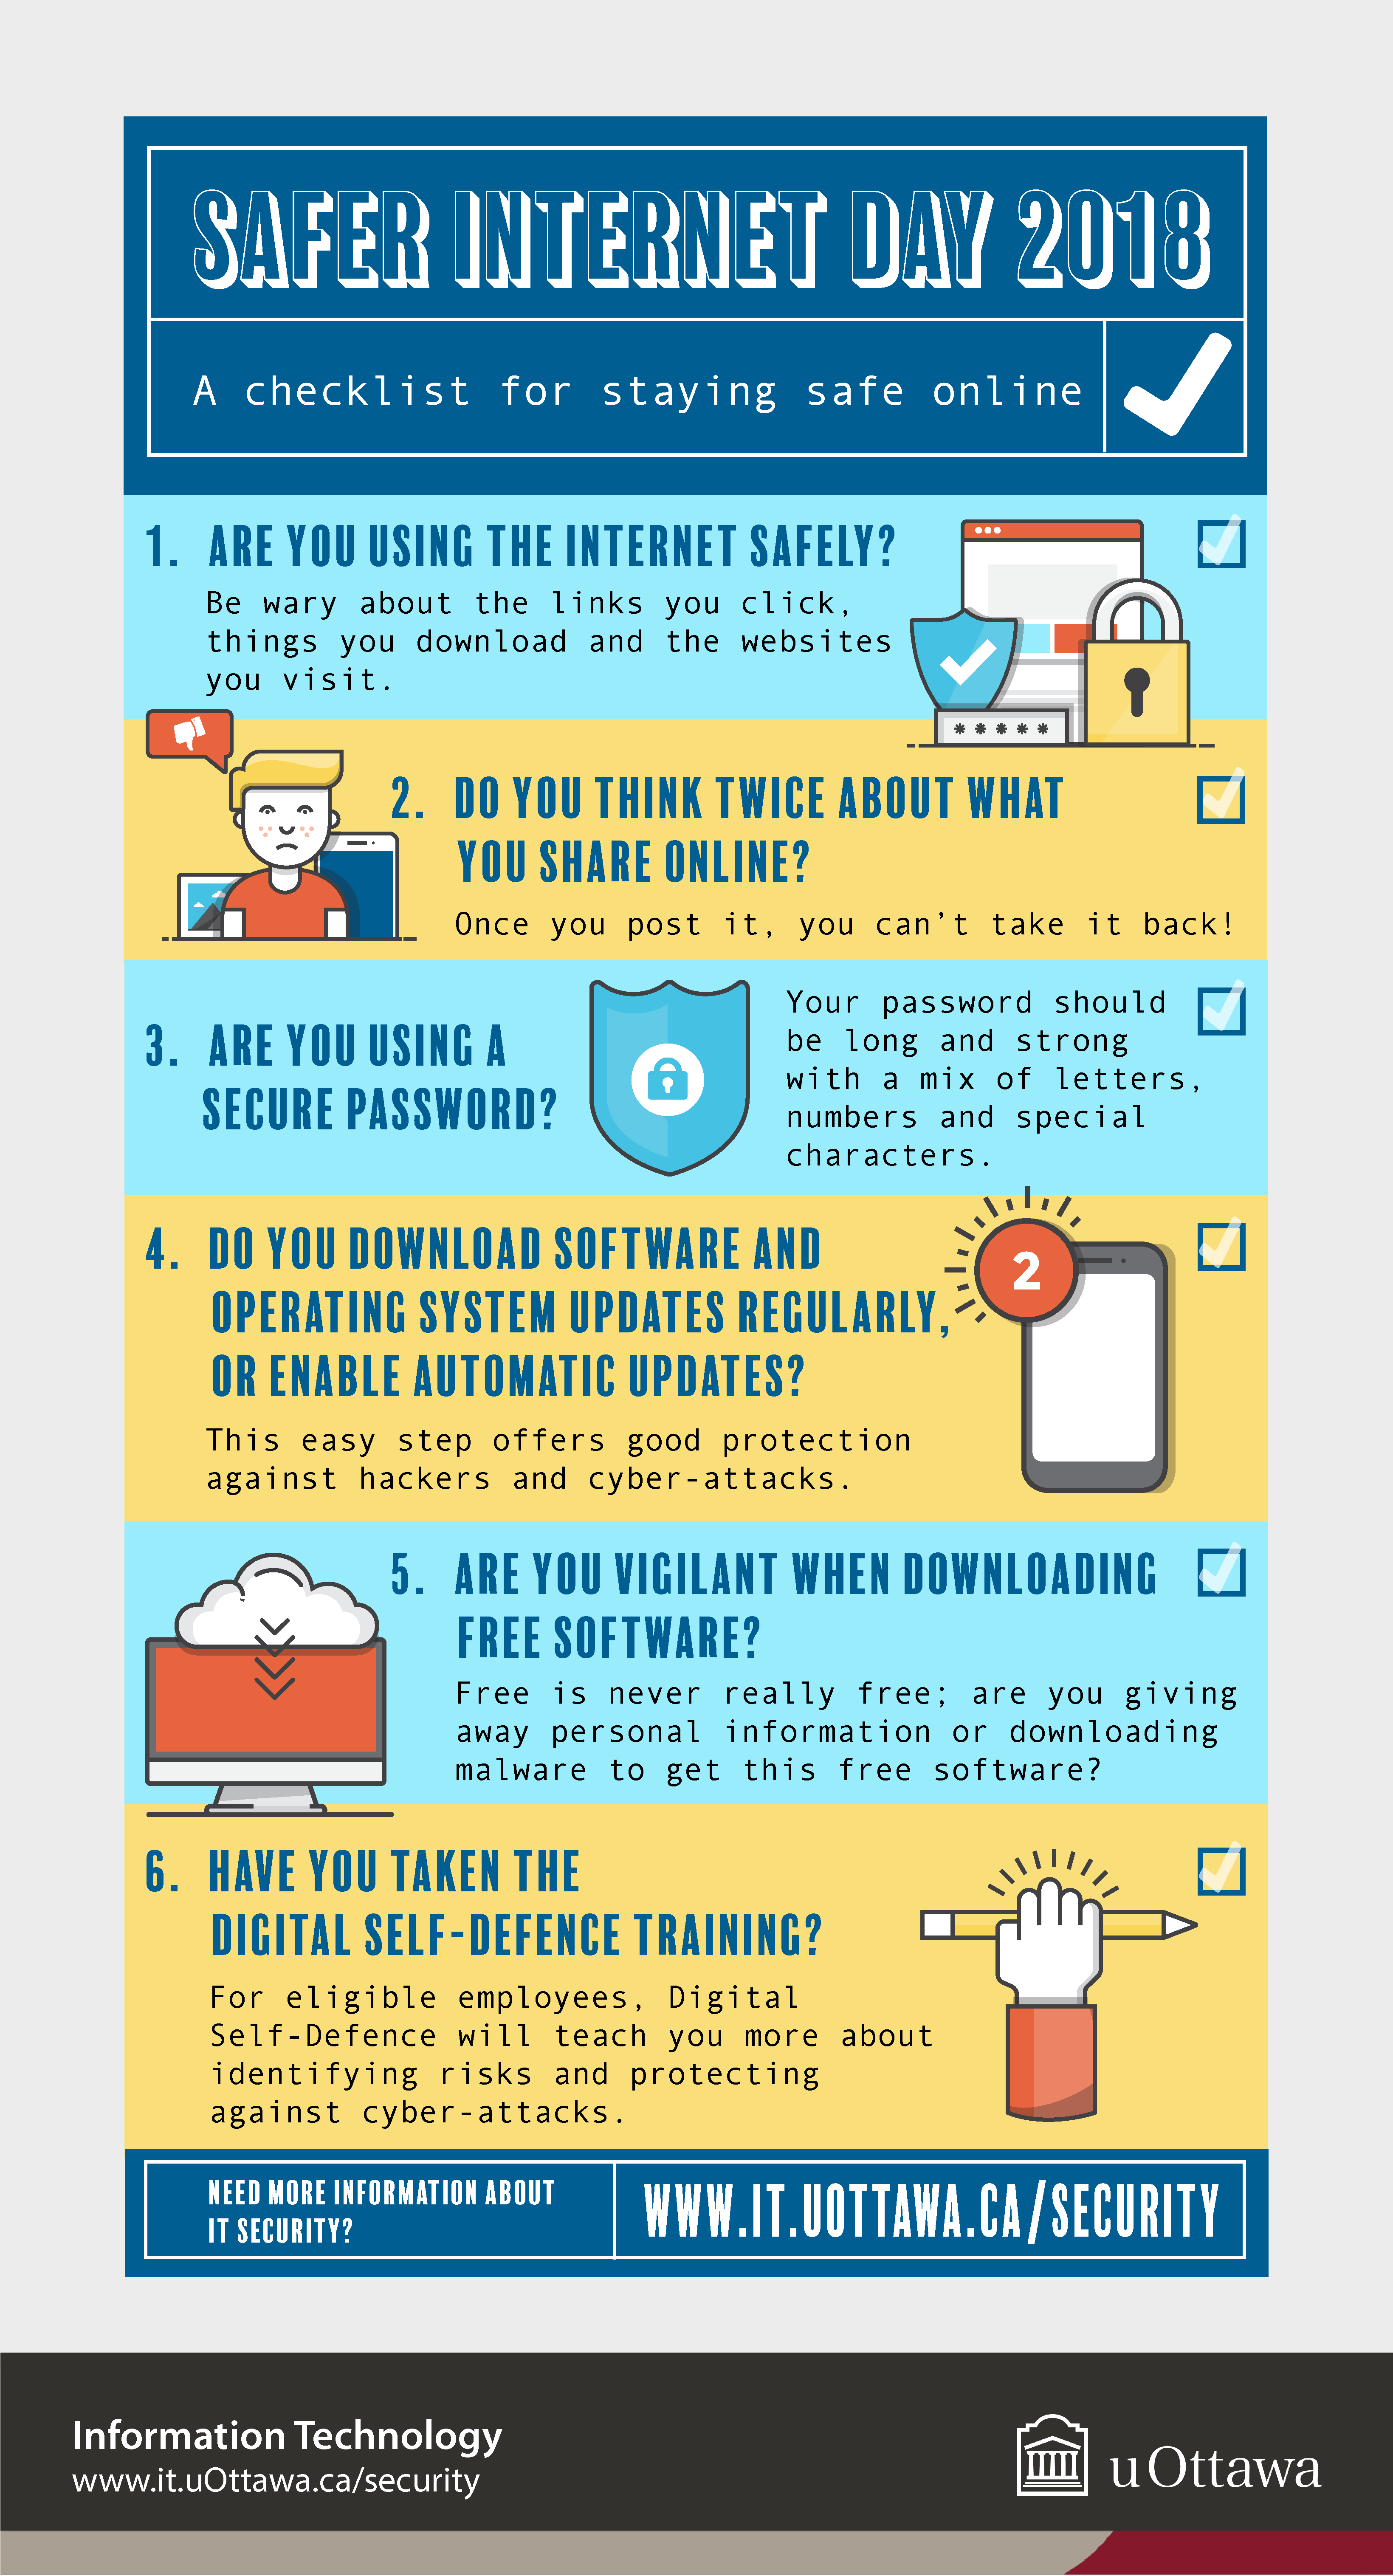 Safer Internet Day 2018 infographic, text version below